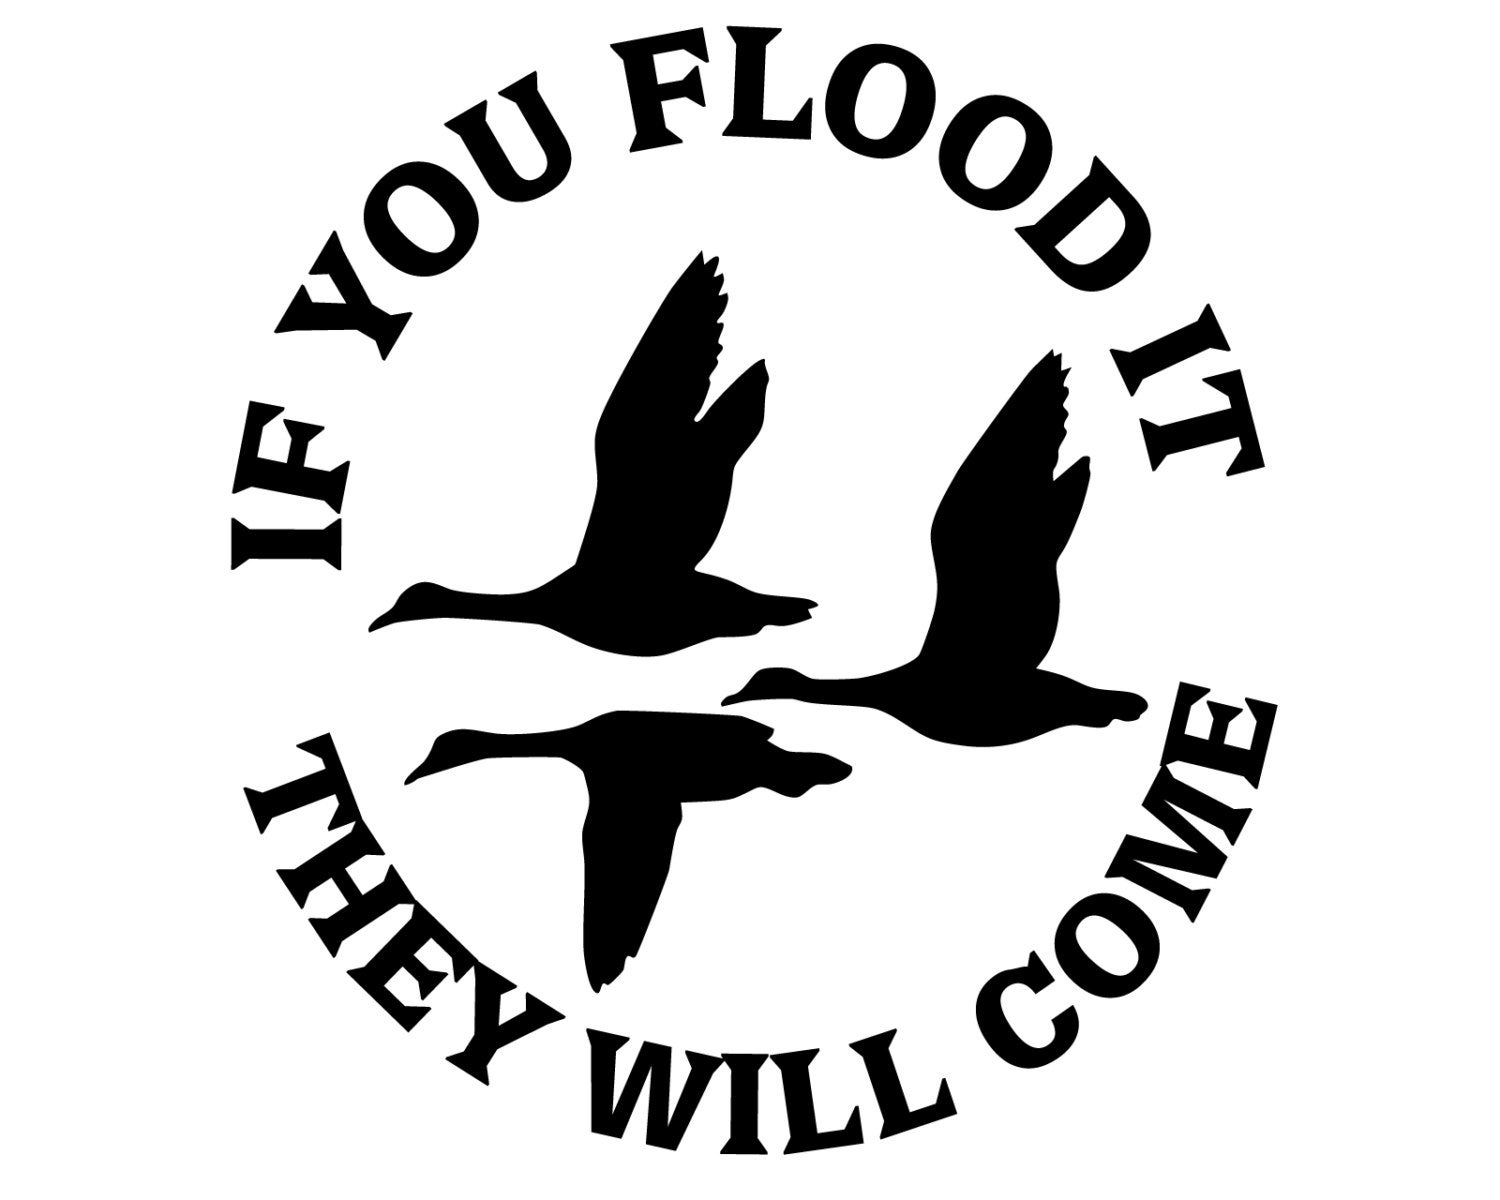 Duck hunting vinyl decal geese hunter sticker if you flood it they will come